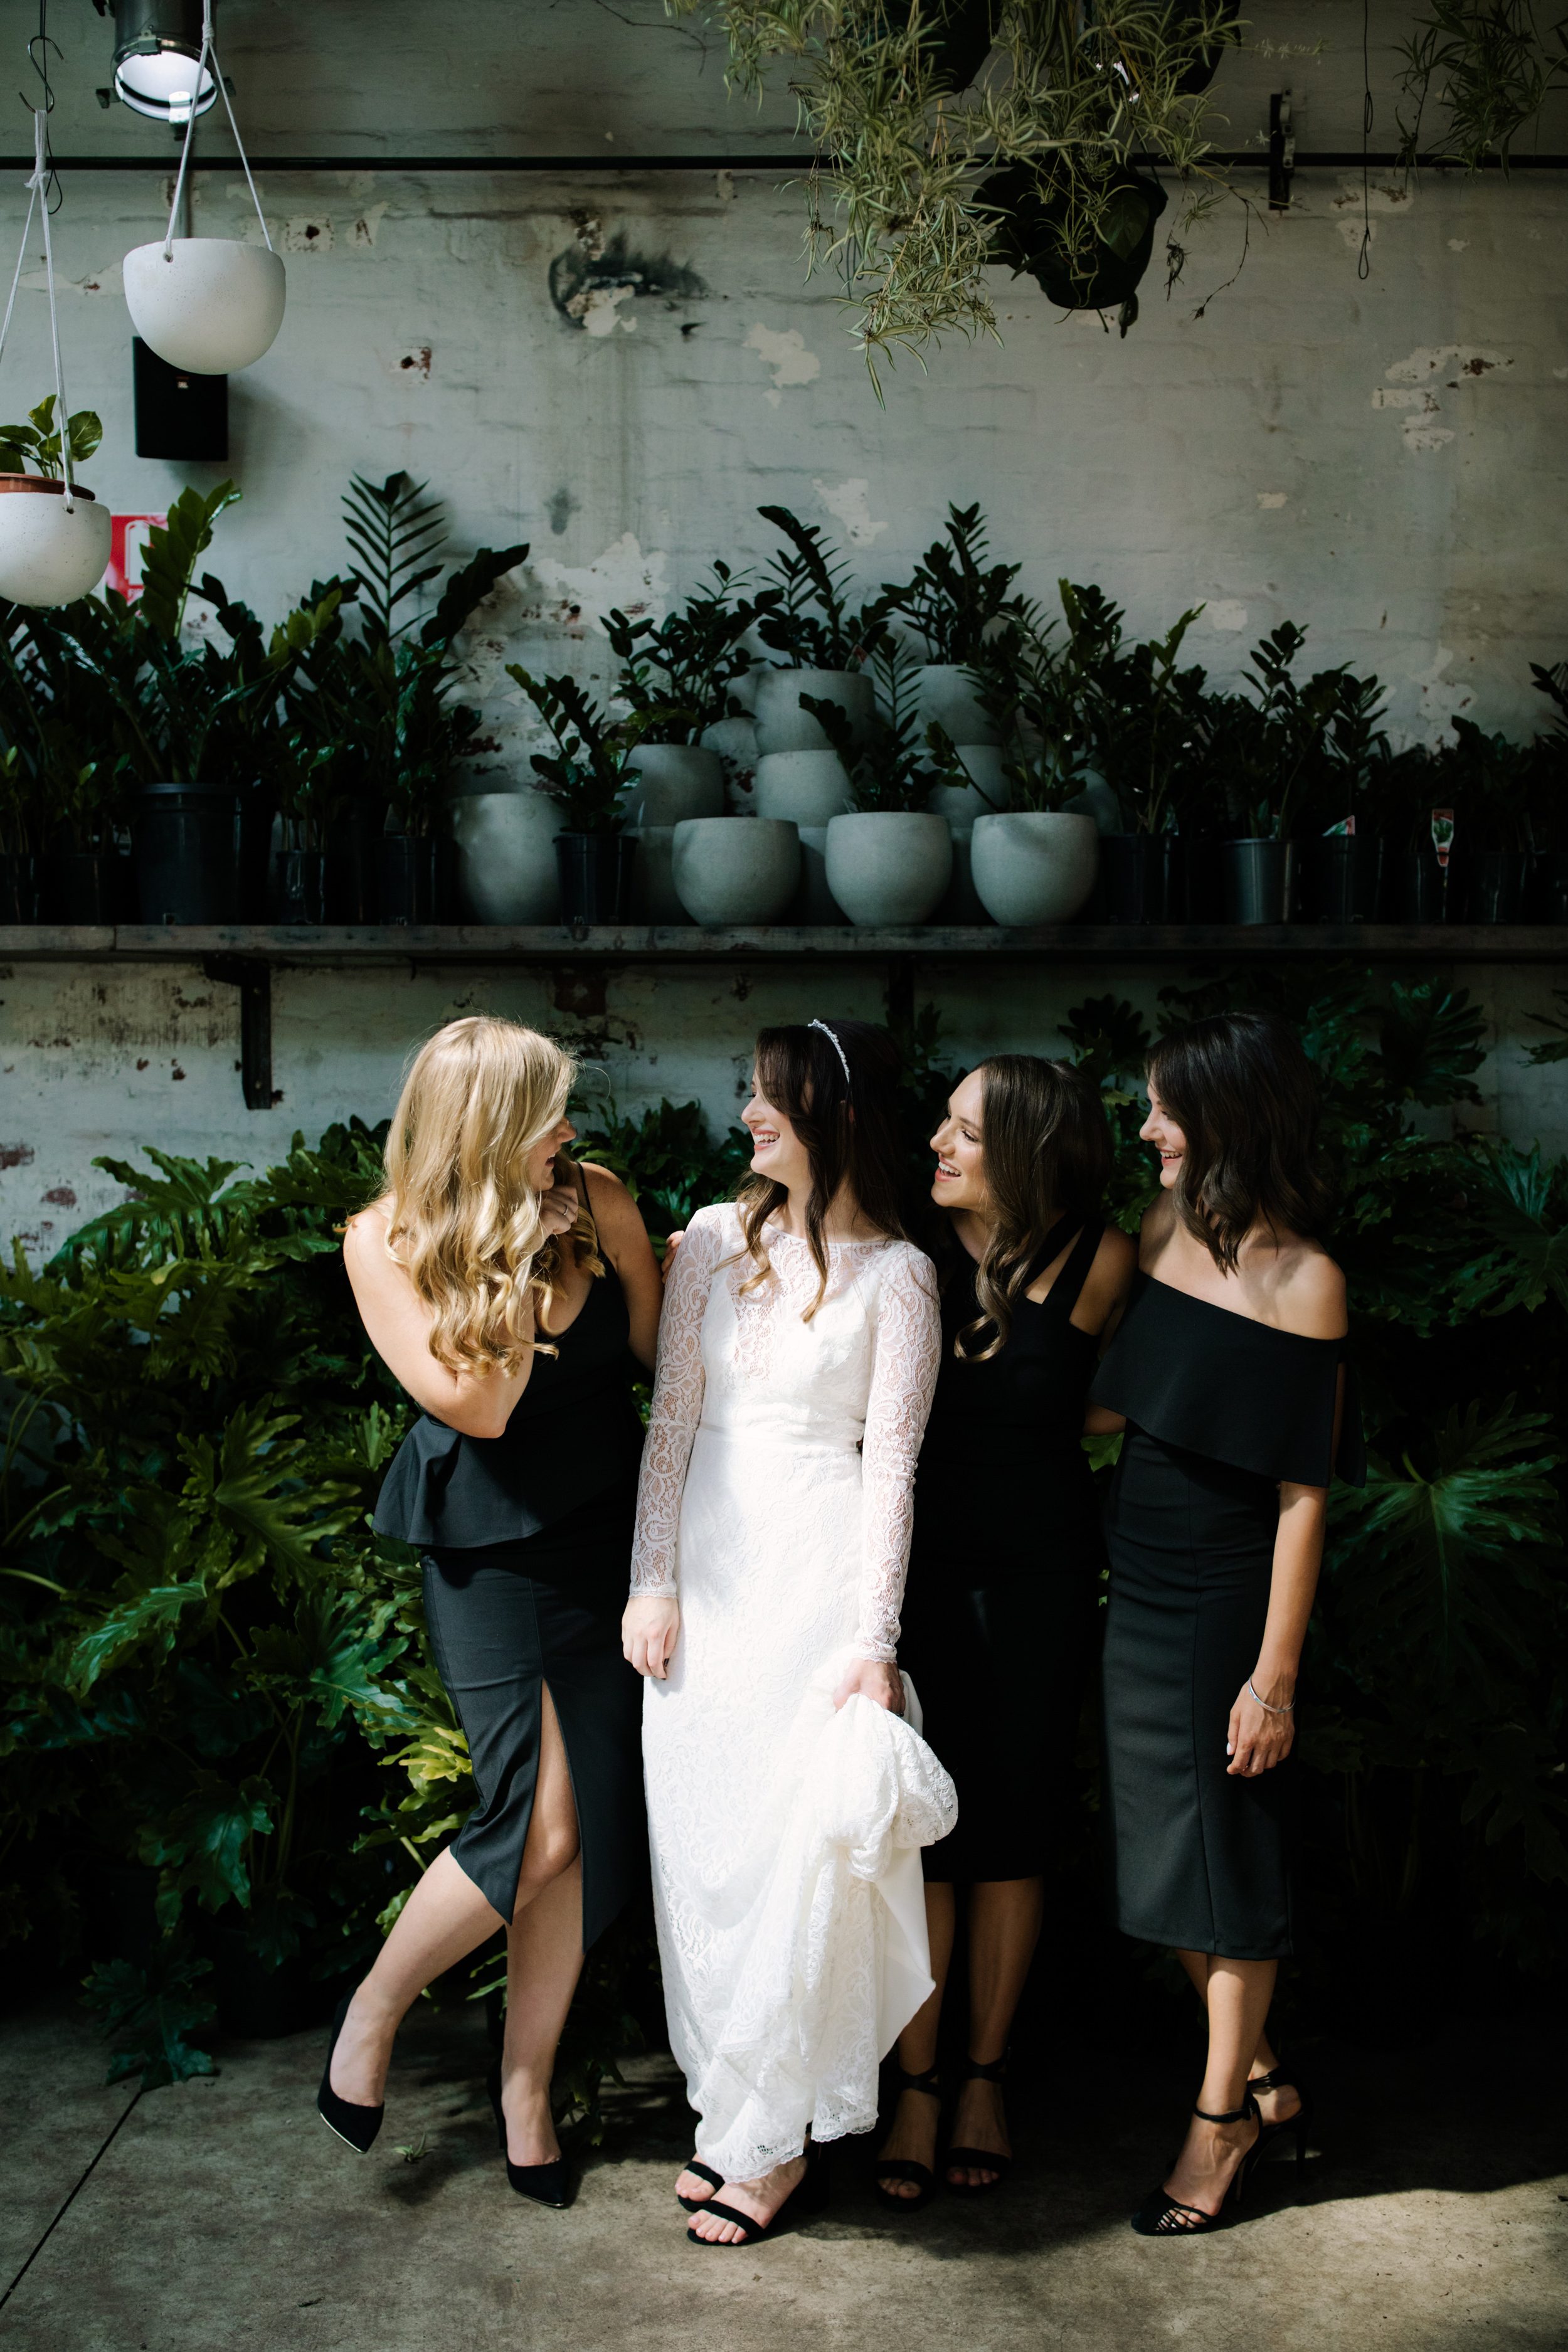 I_Got_You_Babe_Weddings_Emily_Matt_Rupert_Glasshaus_Melbourne0045.JPG